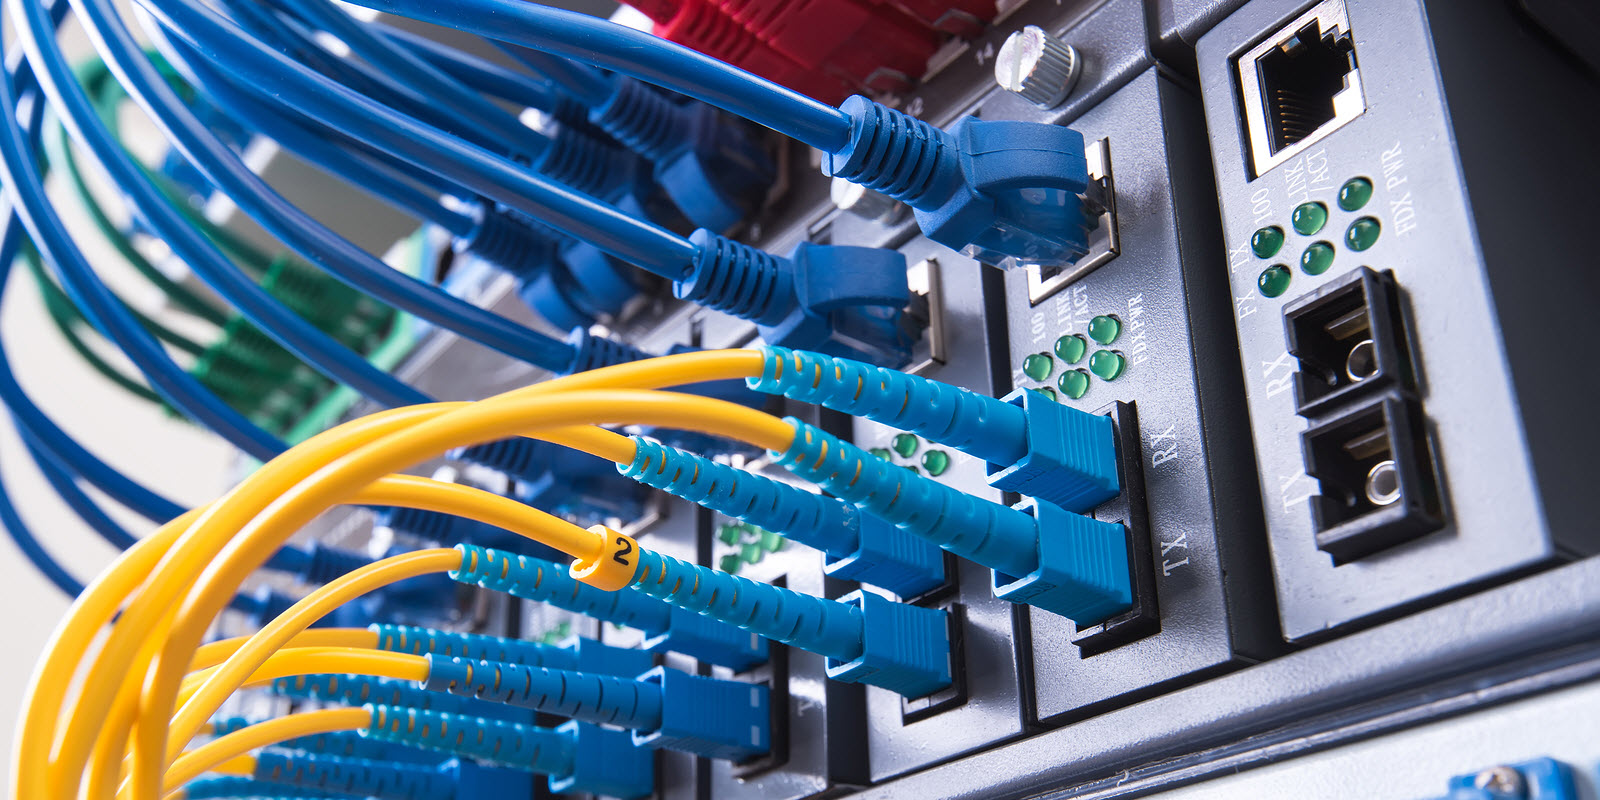 fiberoptic-cable-in-data-center